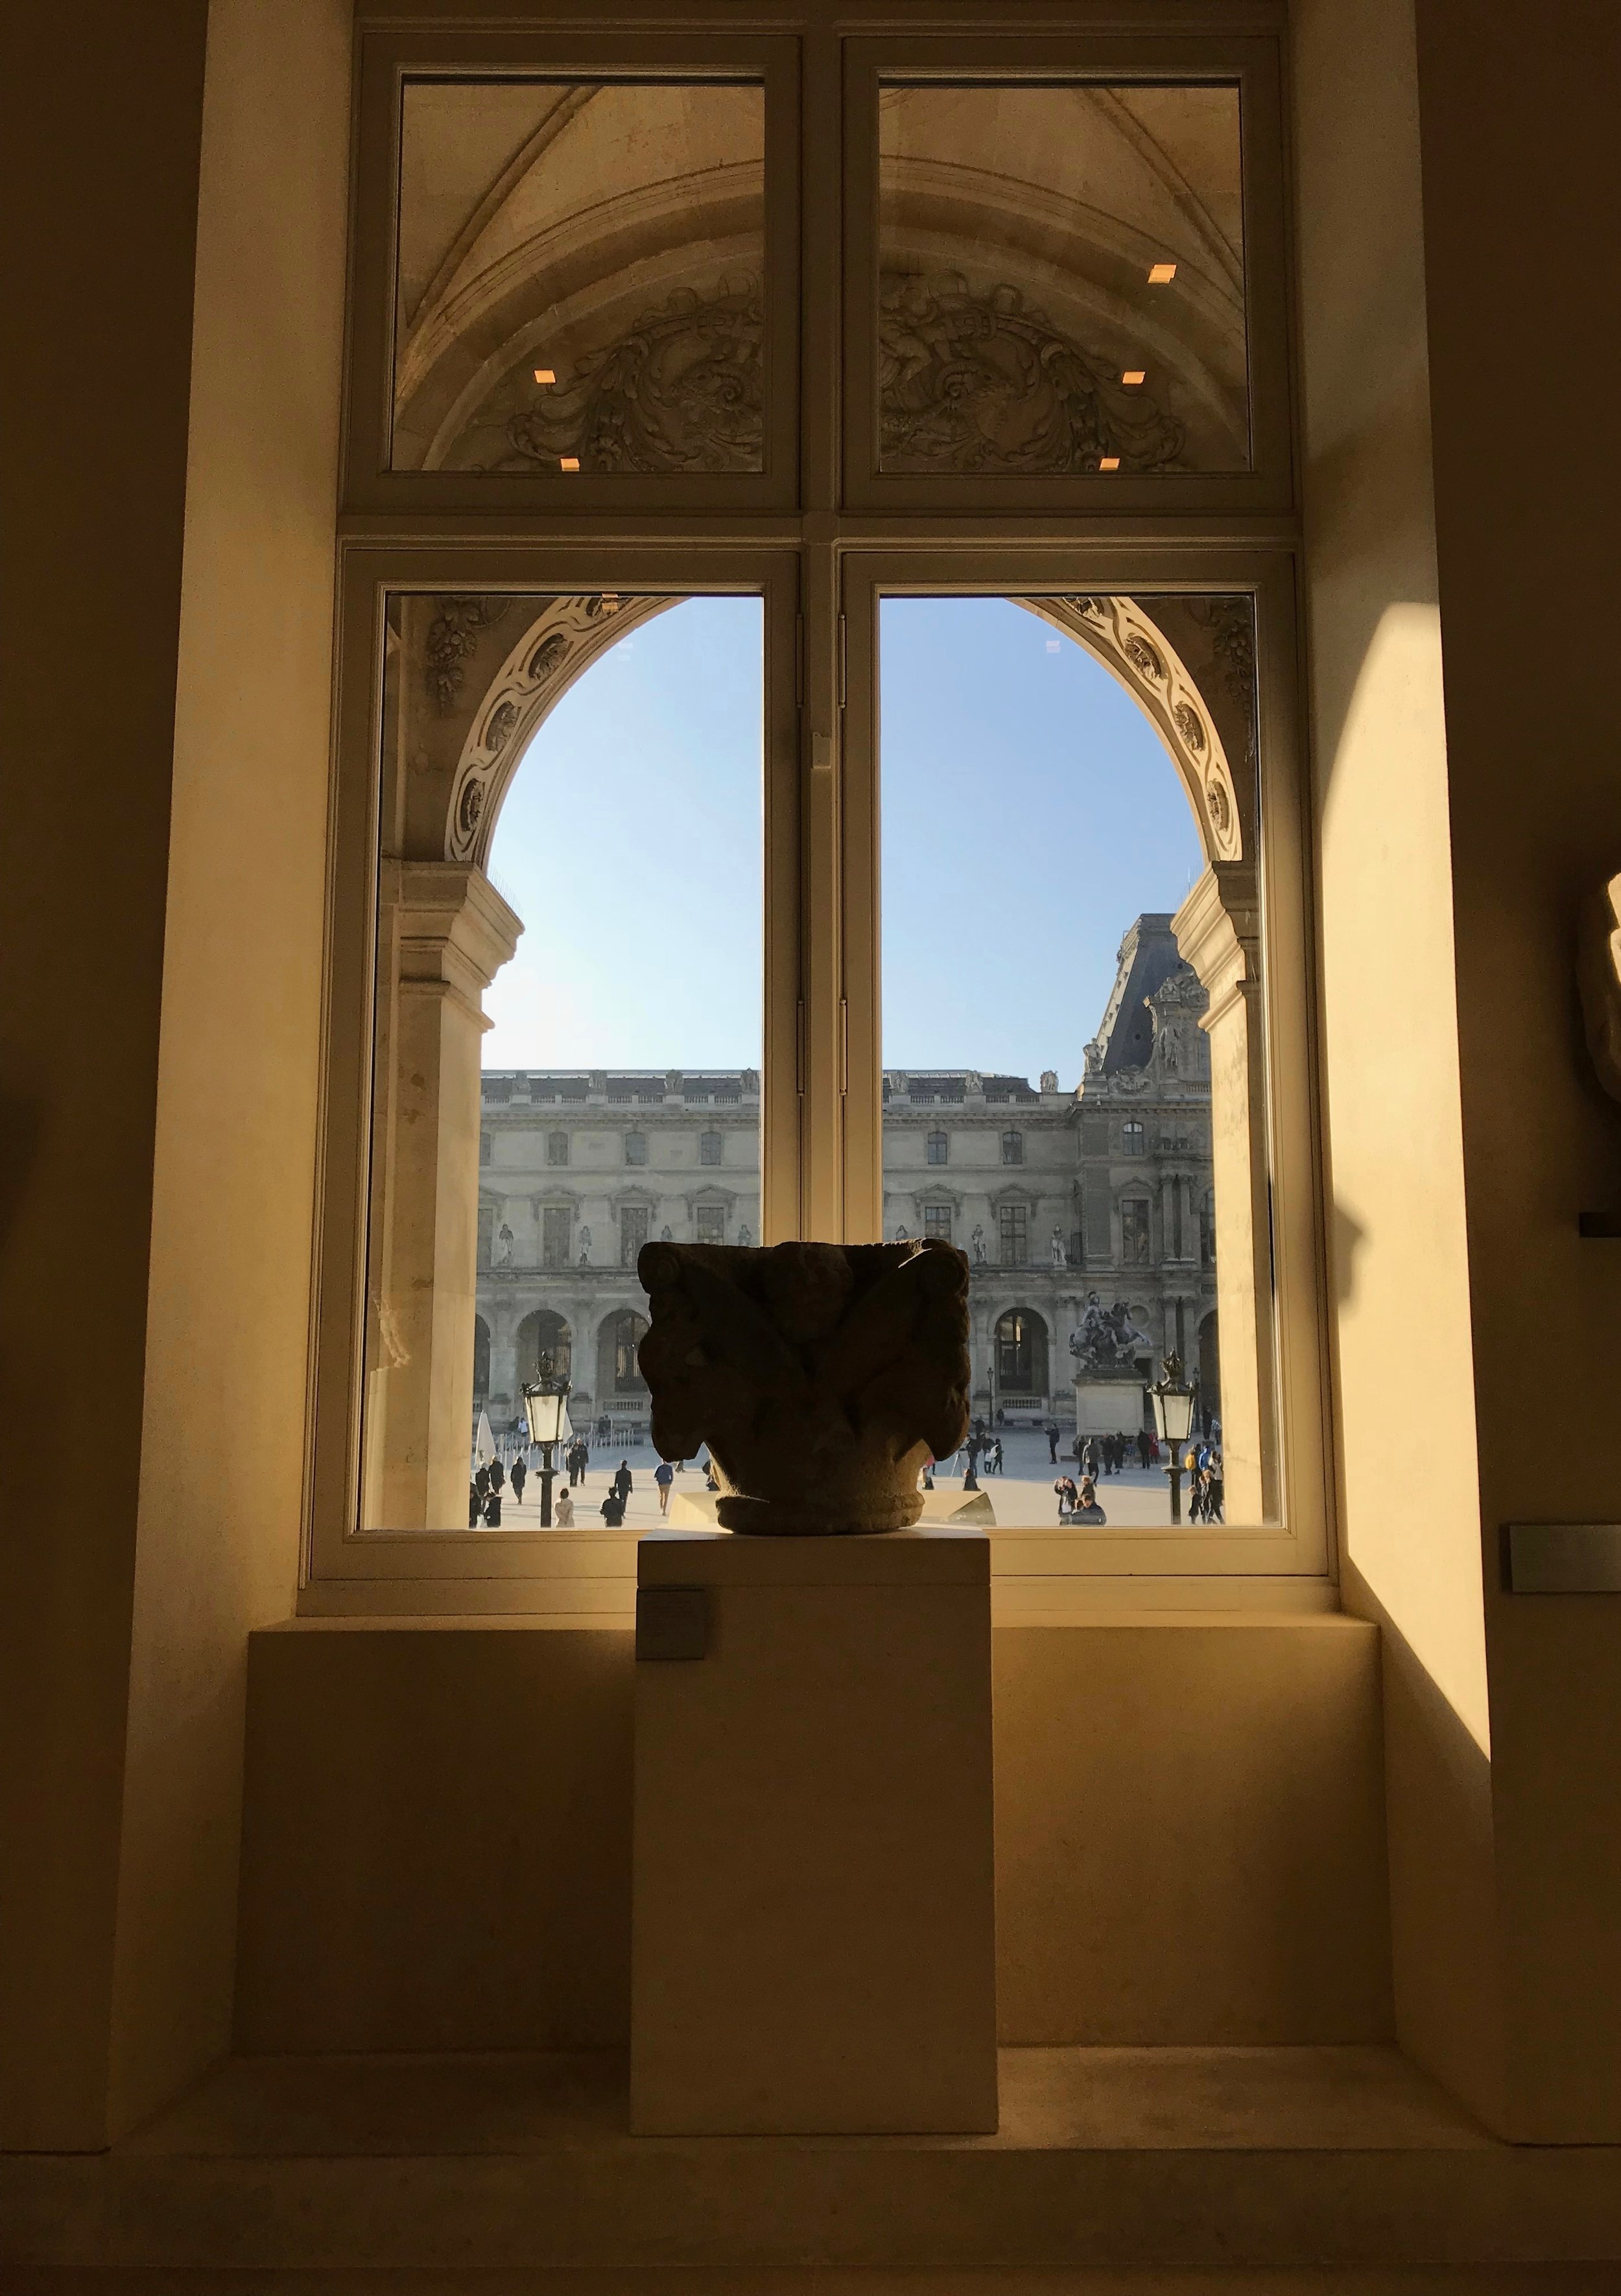 Tips for visiting the Louvre